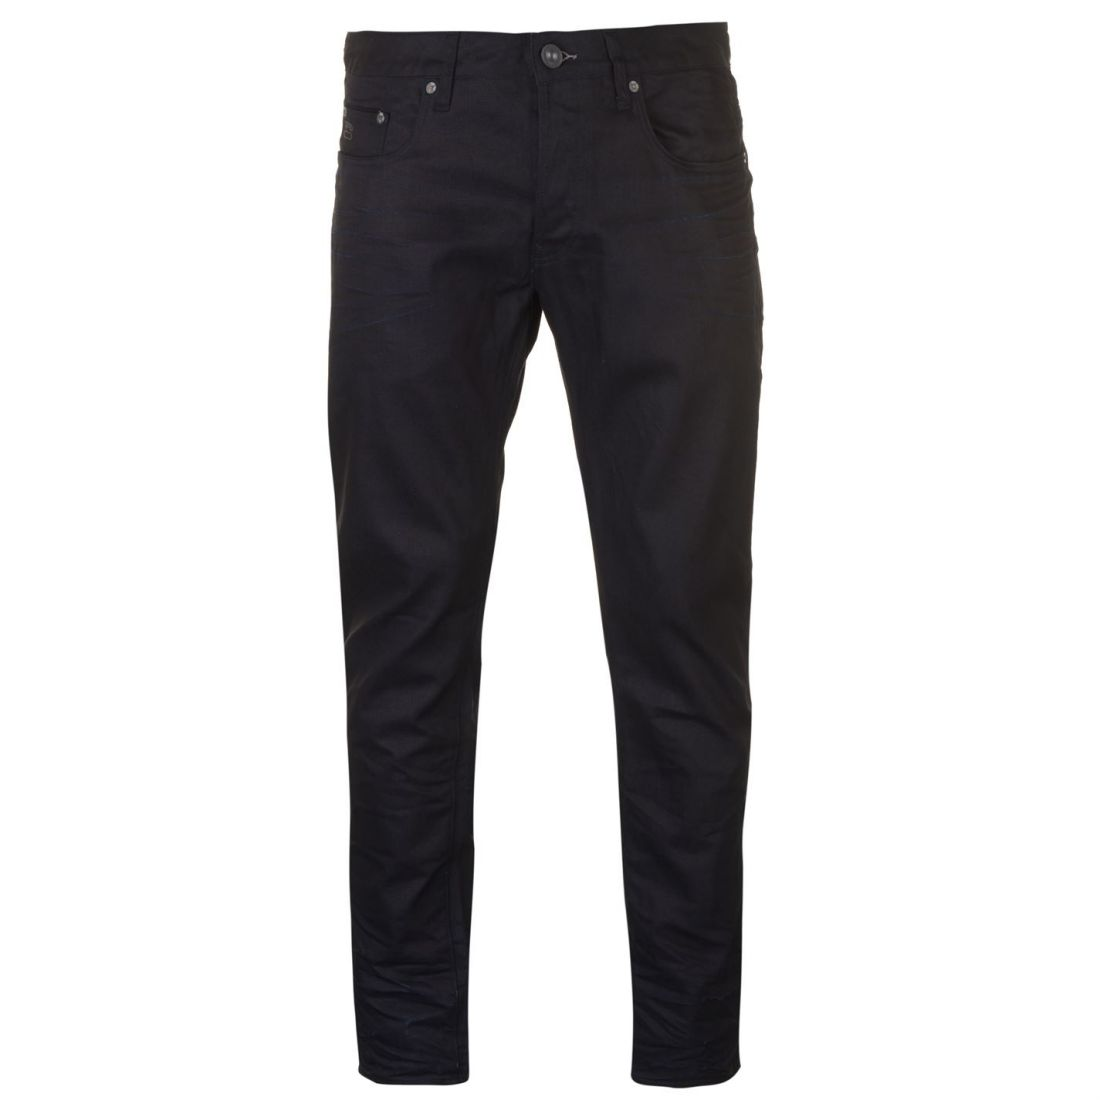 g star mens raw 3301 low tapered jeans straight pants. Black Bedroom Furniture Sets. Home Design Ideas